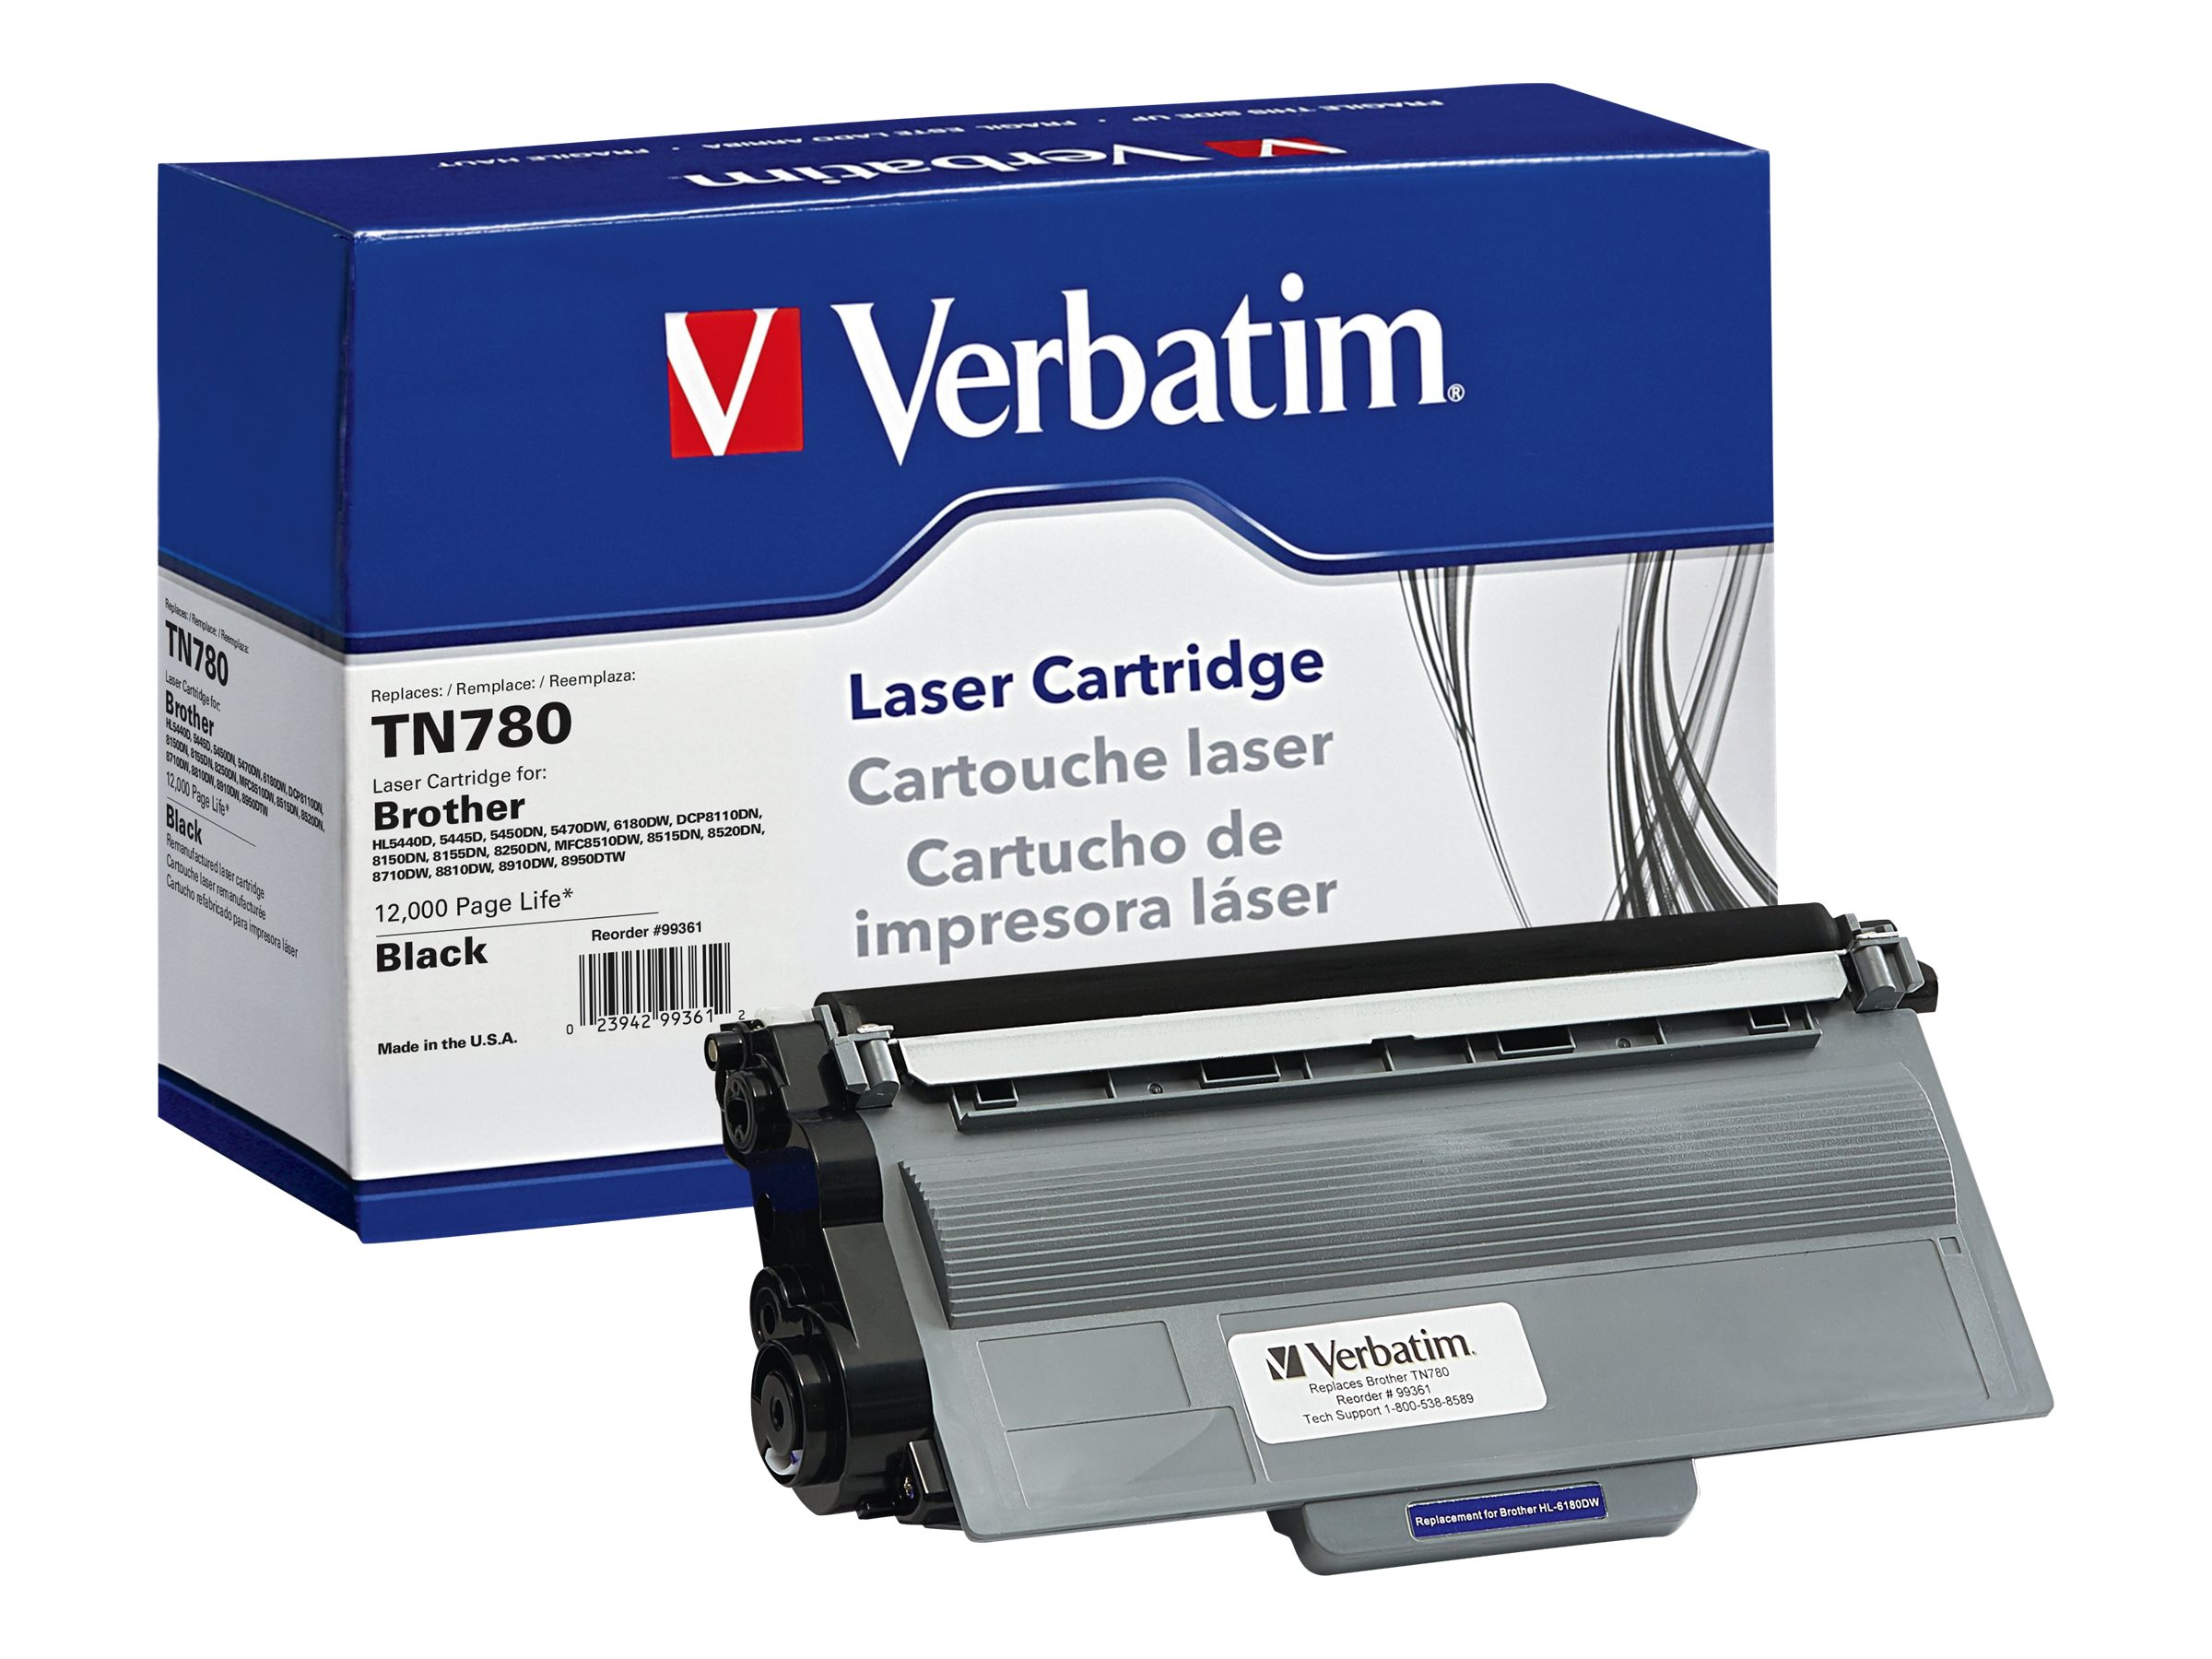 Verbatim TN780 Toner Cartridge for Brother, 99361